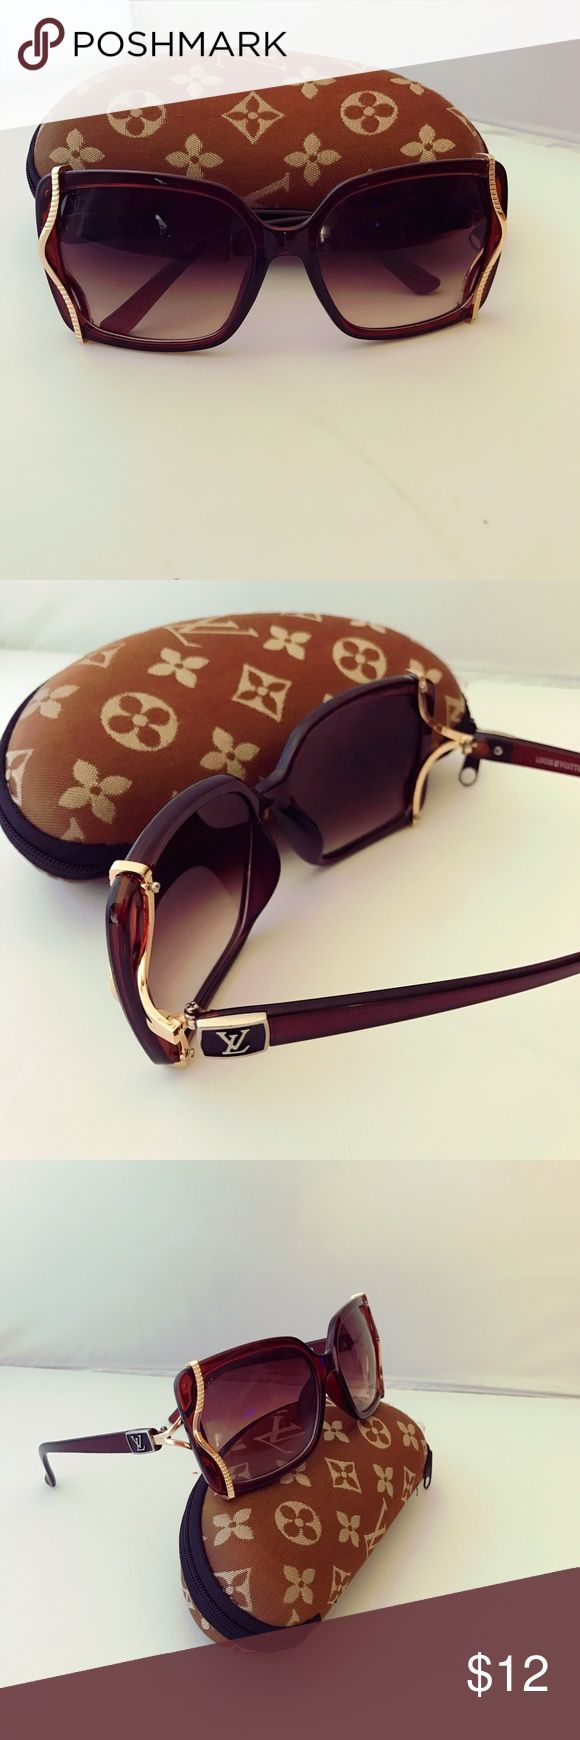 Monogrammed Large  Wave Frame Sunglasses 😎w/Case Monogrammed Replica Large Wave Square Frame Sunglasses w/Case like new condition 🤓 Accessories Sunglasses